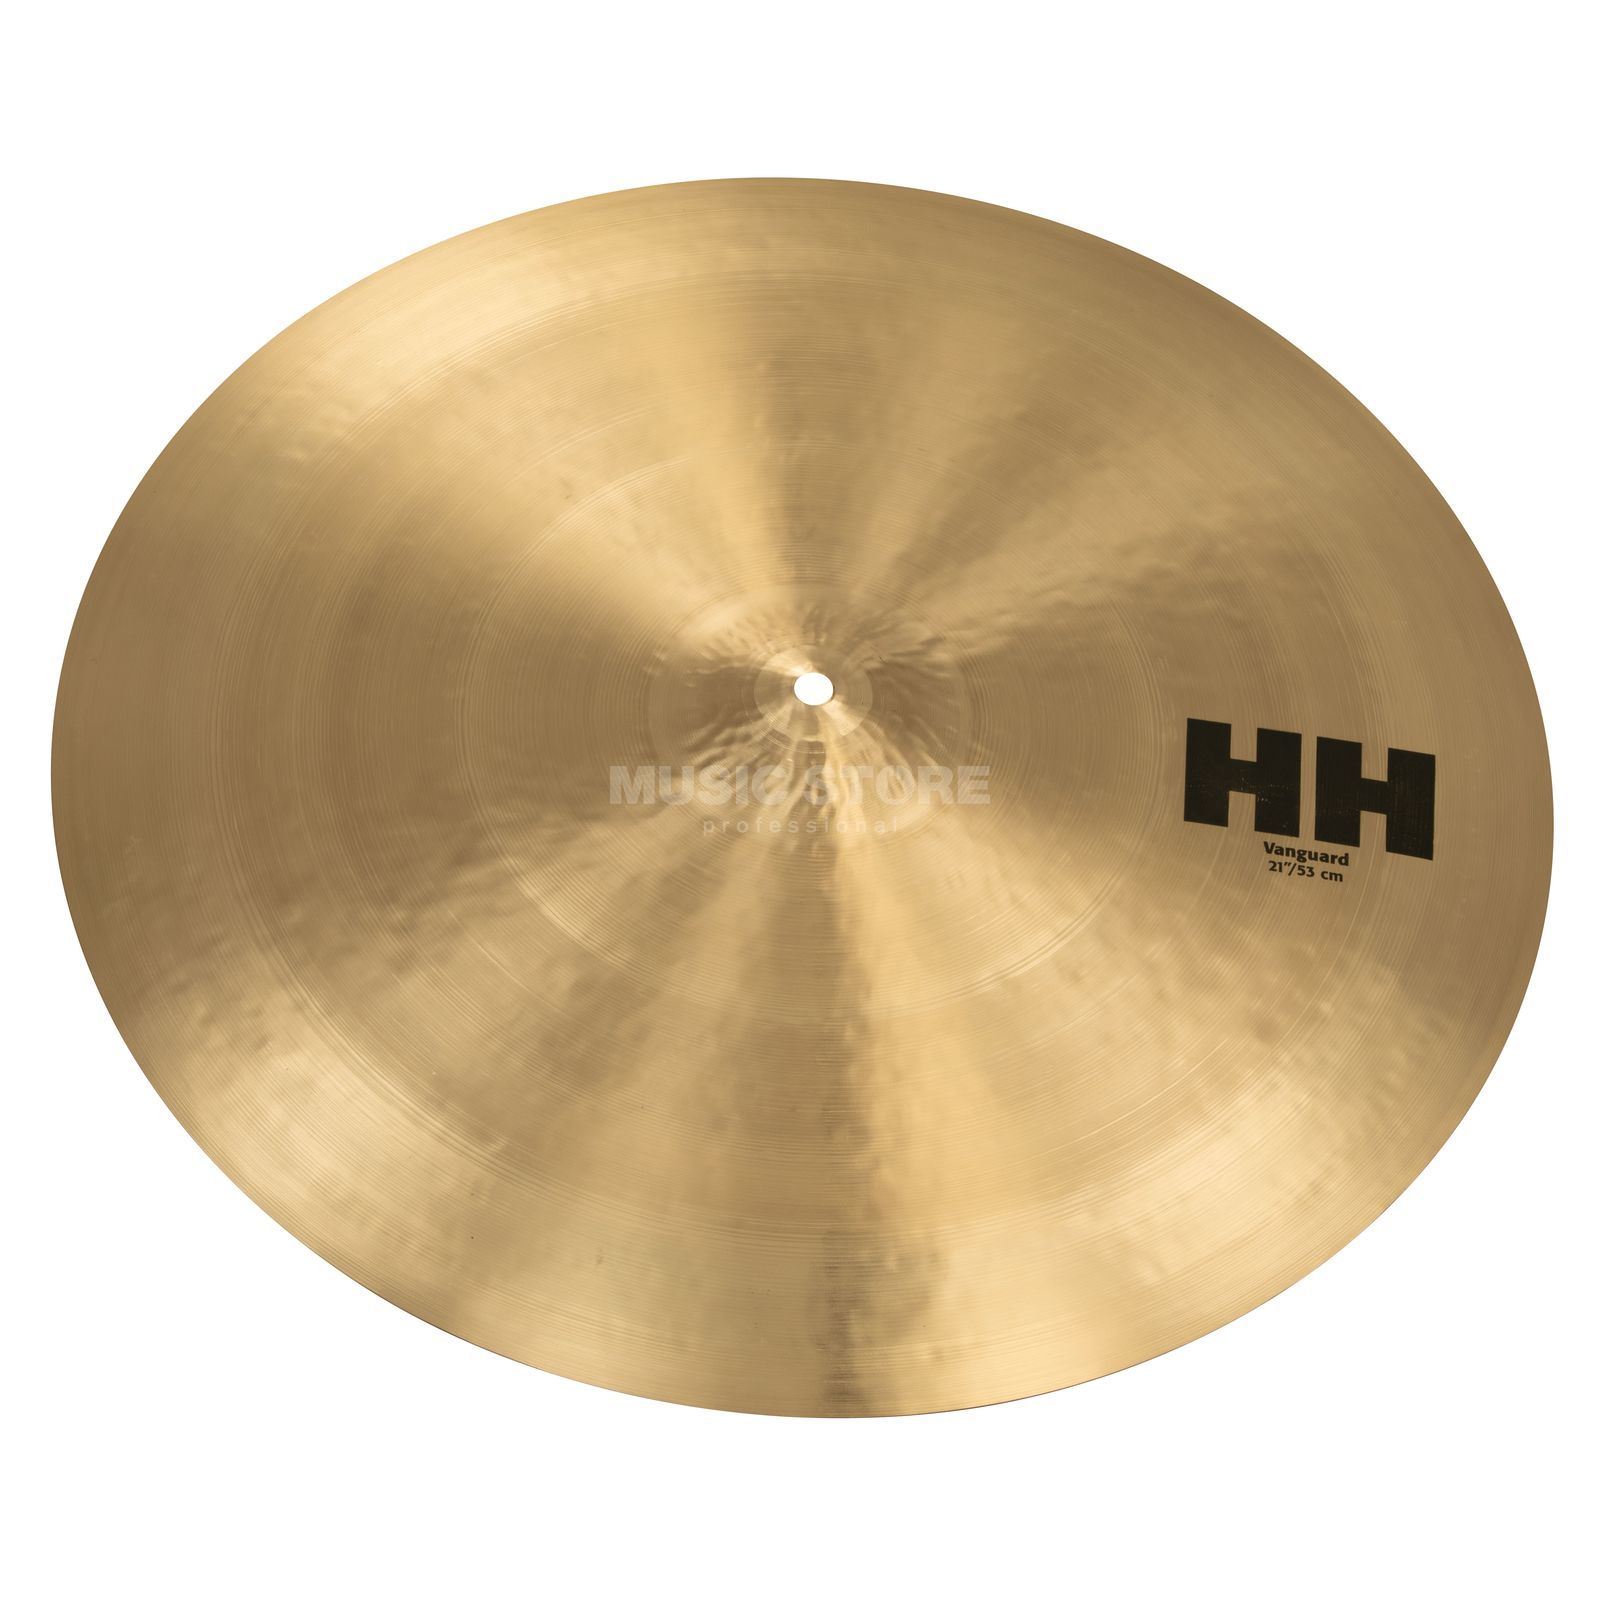 "Sabian HH Vanguard Ride 21"", Remastered Product Image"